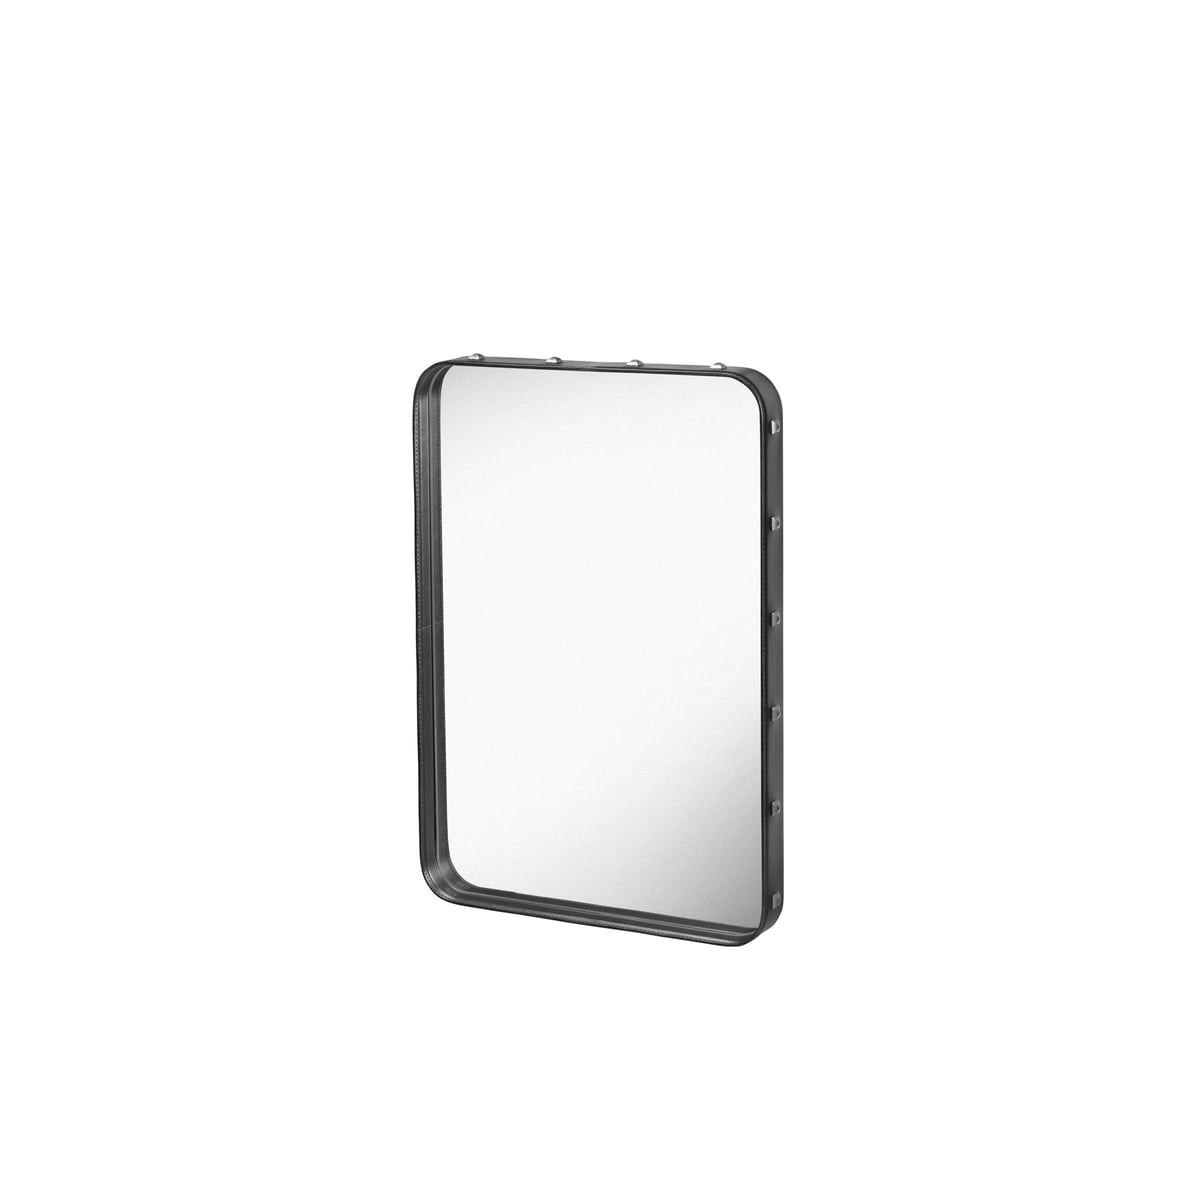 Achetez le miroir adnet rectangle par gubi for Application miroir android